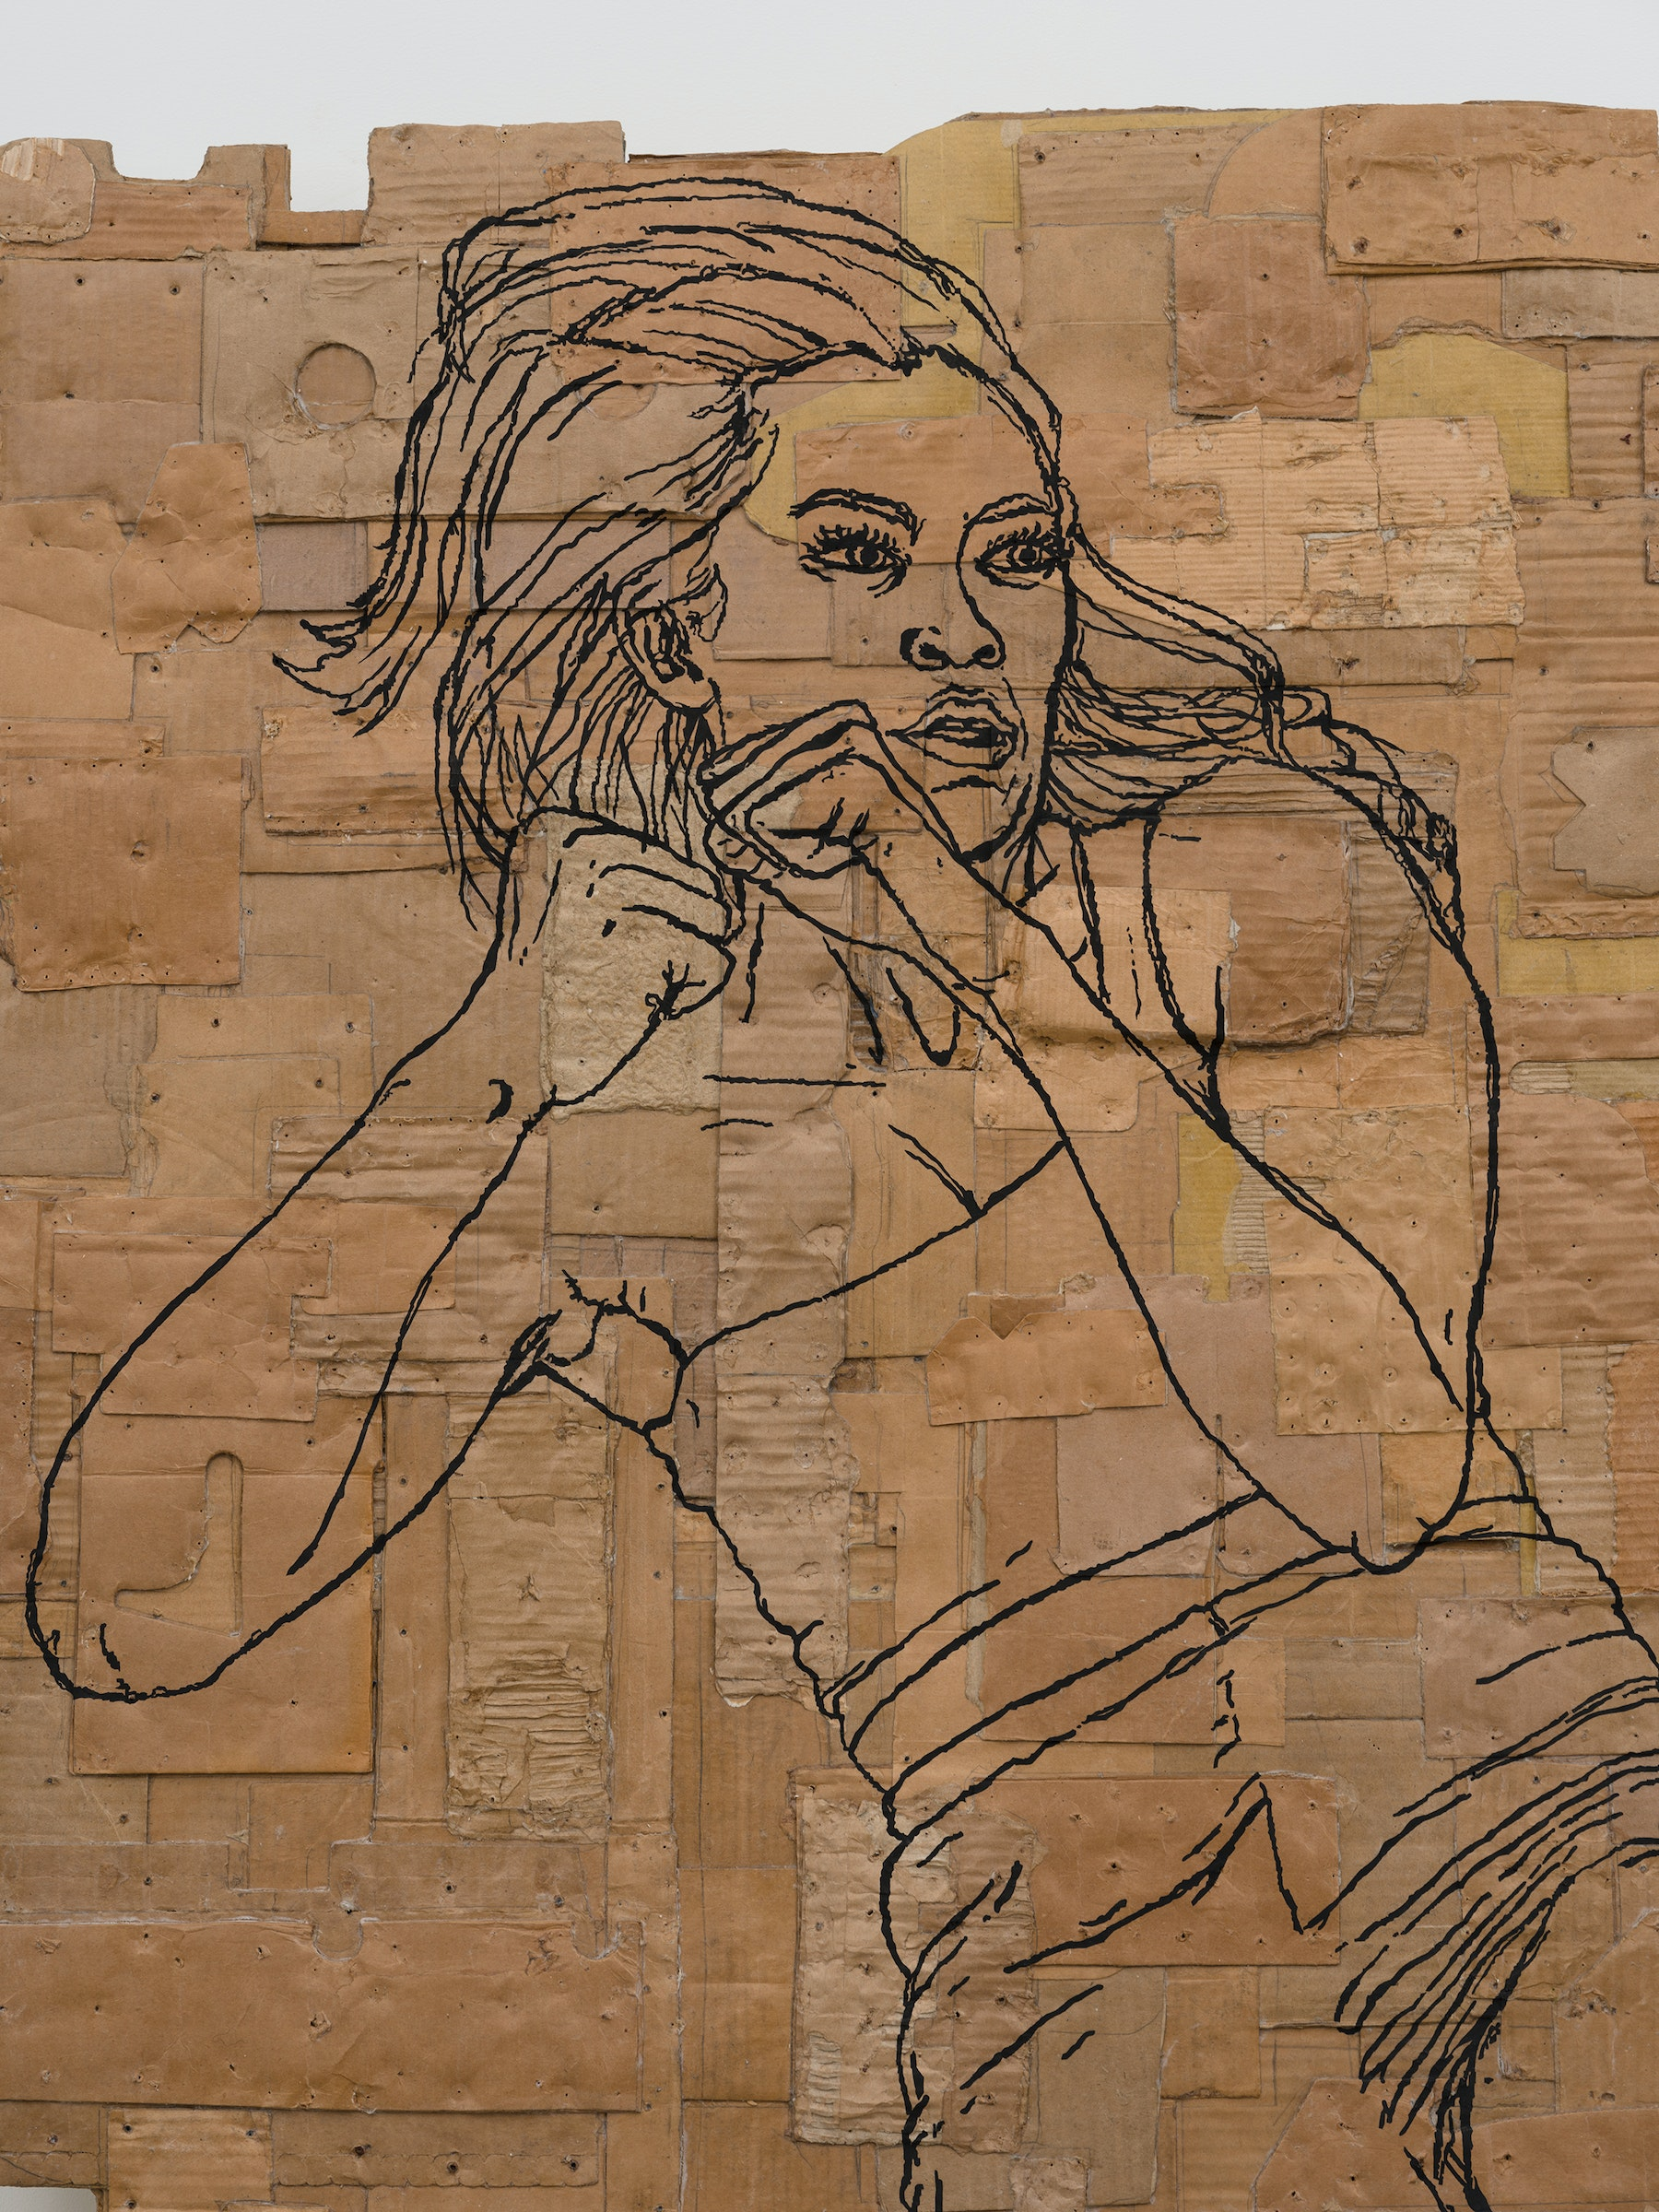 """Andrea Bowers """"Fighting Women, Tiffany, Jump Snap Kick,"""" 2021 Acrylic and pigment ink on cardboard 99"""" x 63 ³⁄₄"""" x 4 ¹⁄₂"""" [HxWxD] (251.46 x 161.92 x 11.43 cm) Inventory #BOW575 Courtesy of the artist and Vielmetter Los Angeles Photo credit: Jeff McLane"""